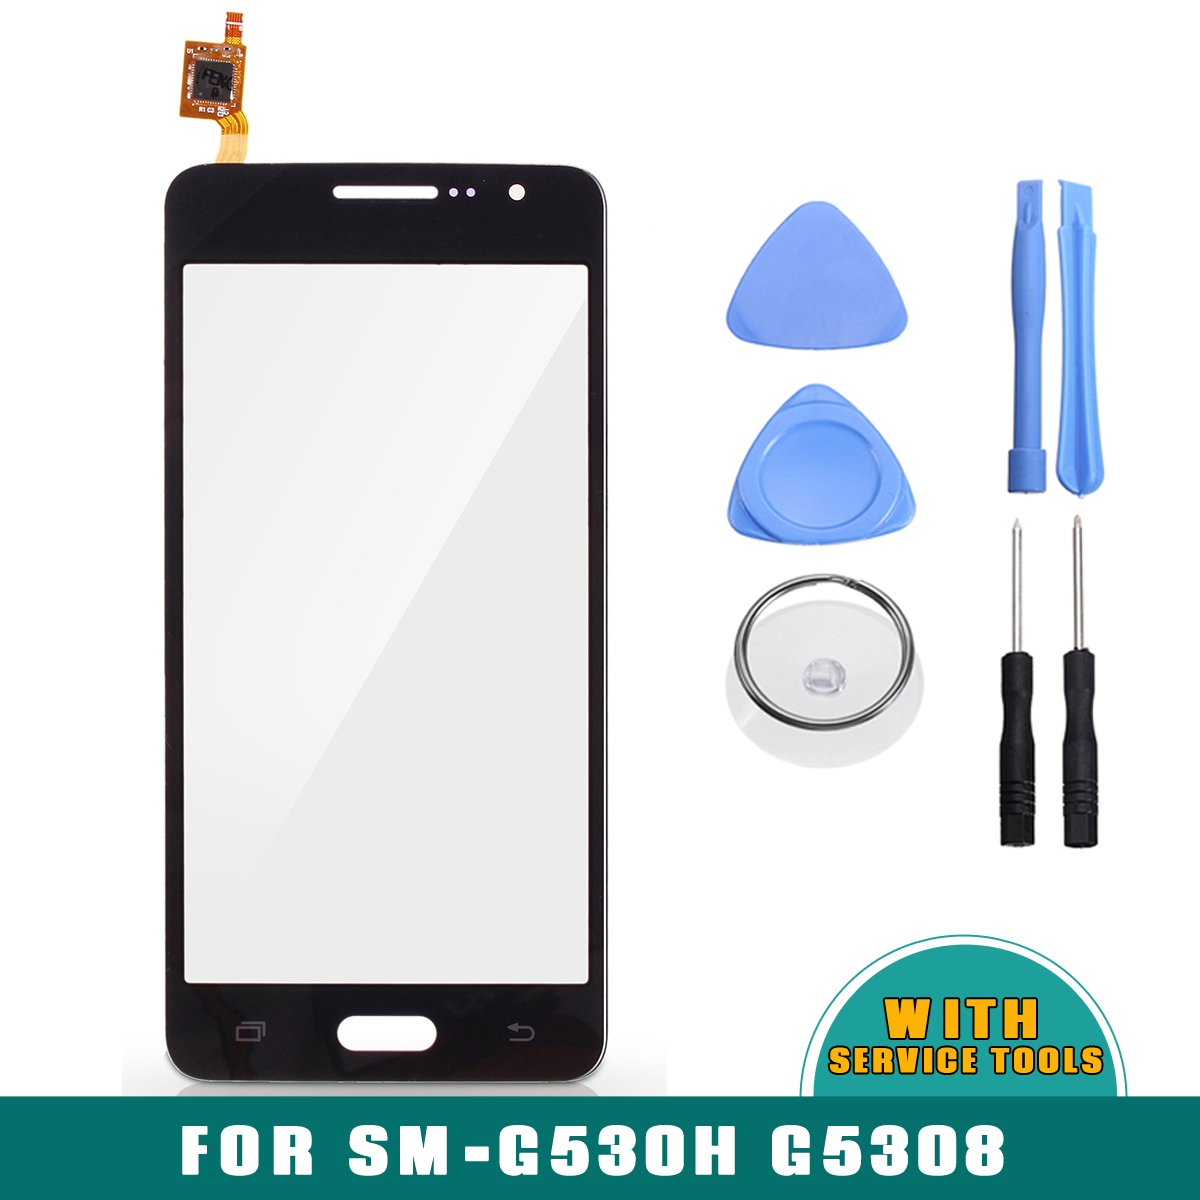 Touch Screen Digitizer Glass Replacement Part & Repair Tools for Samsung Galaxy Grand Prime SM-G530H G5308